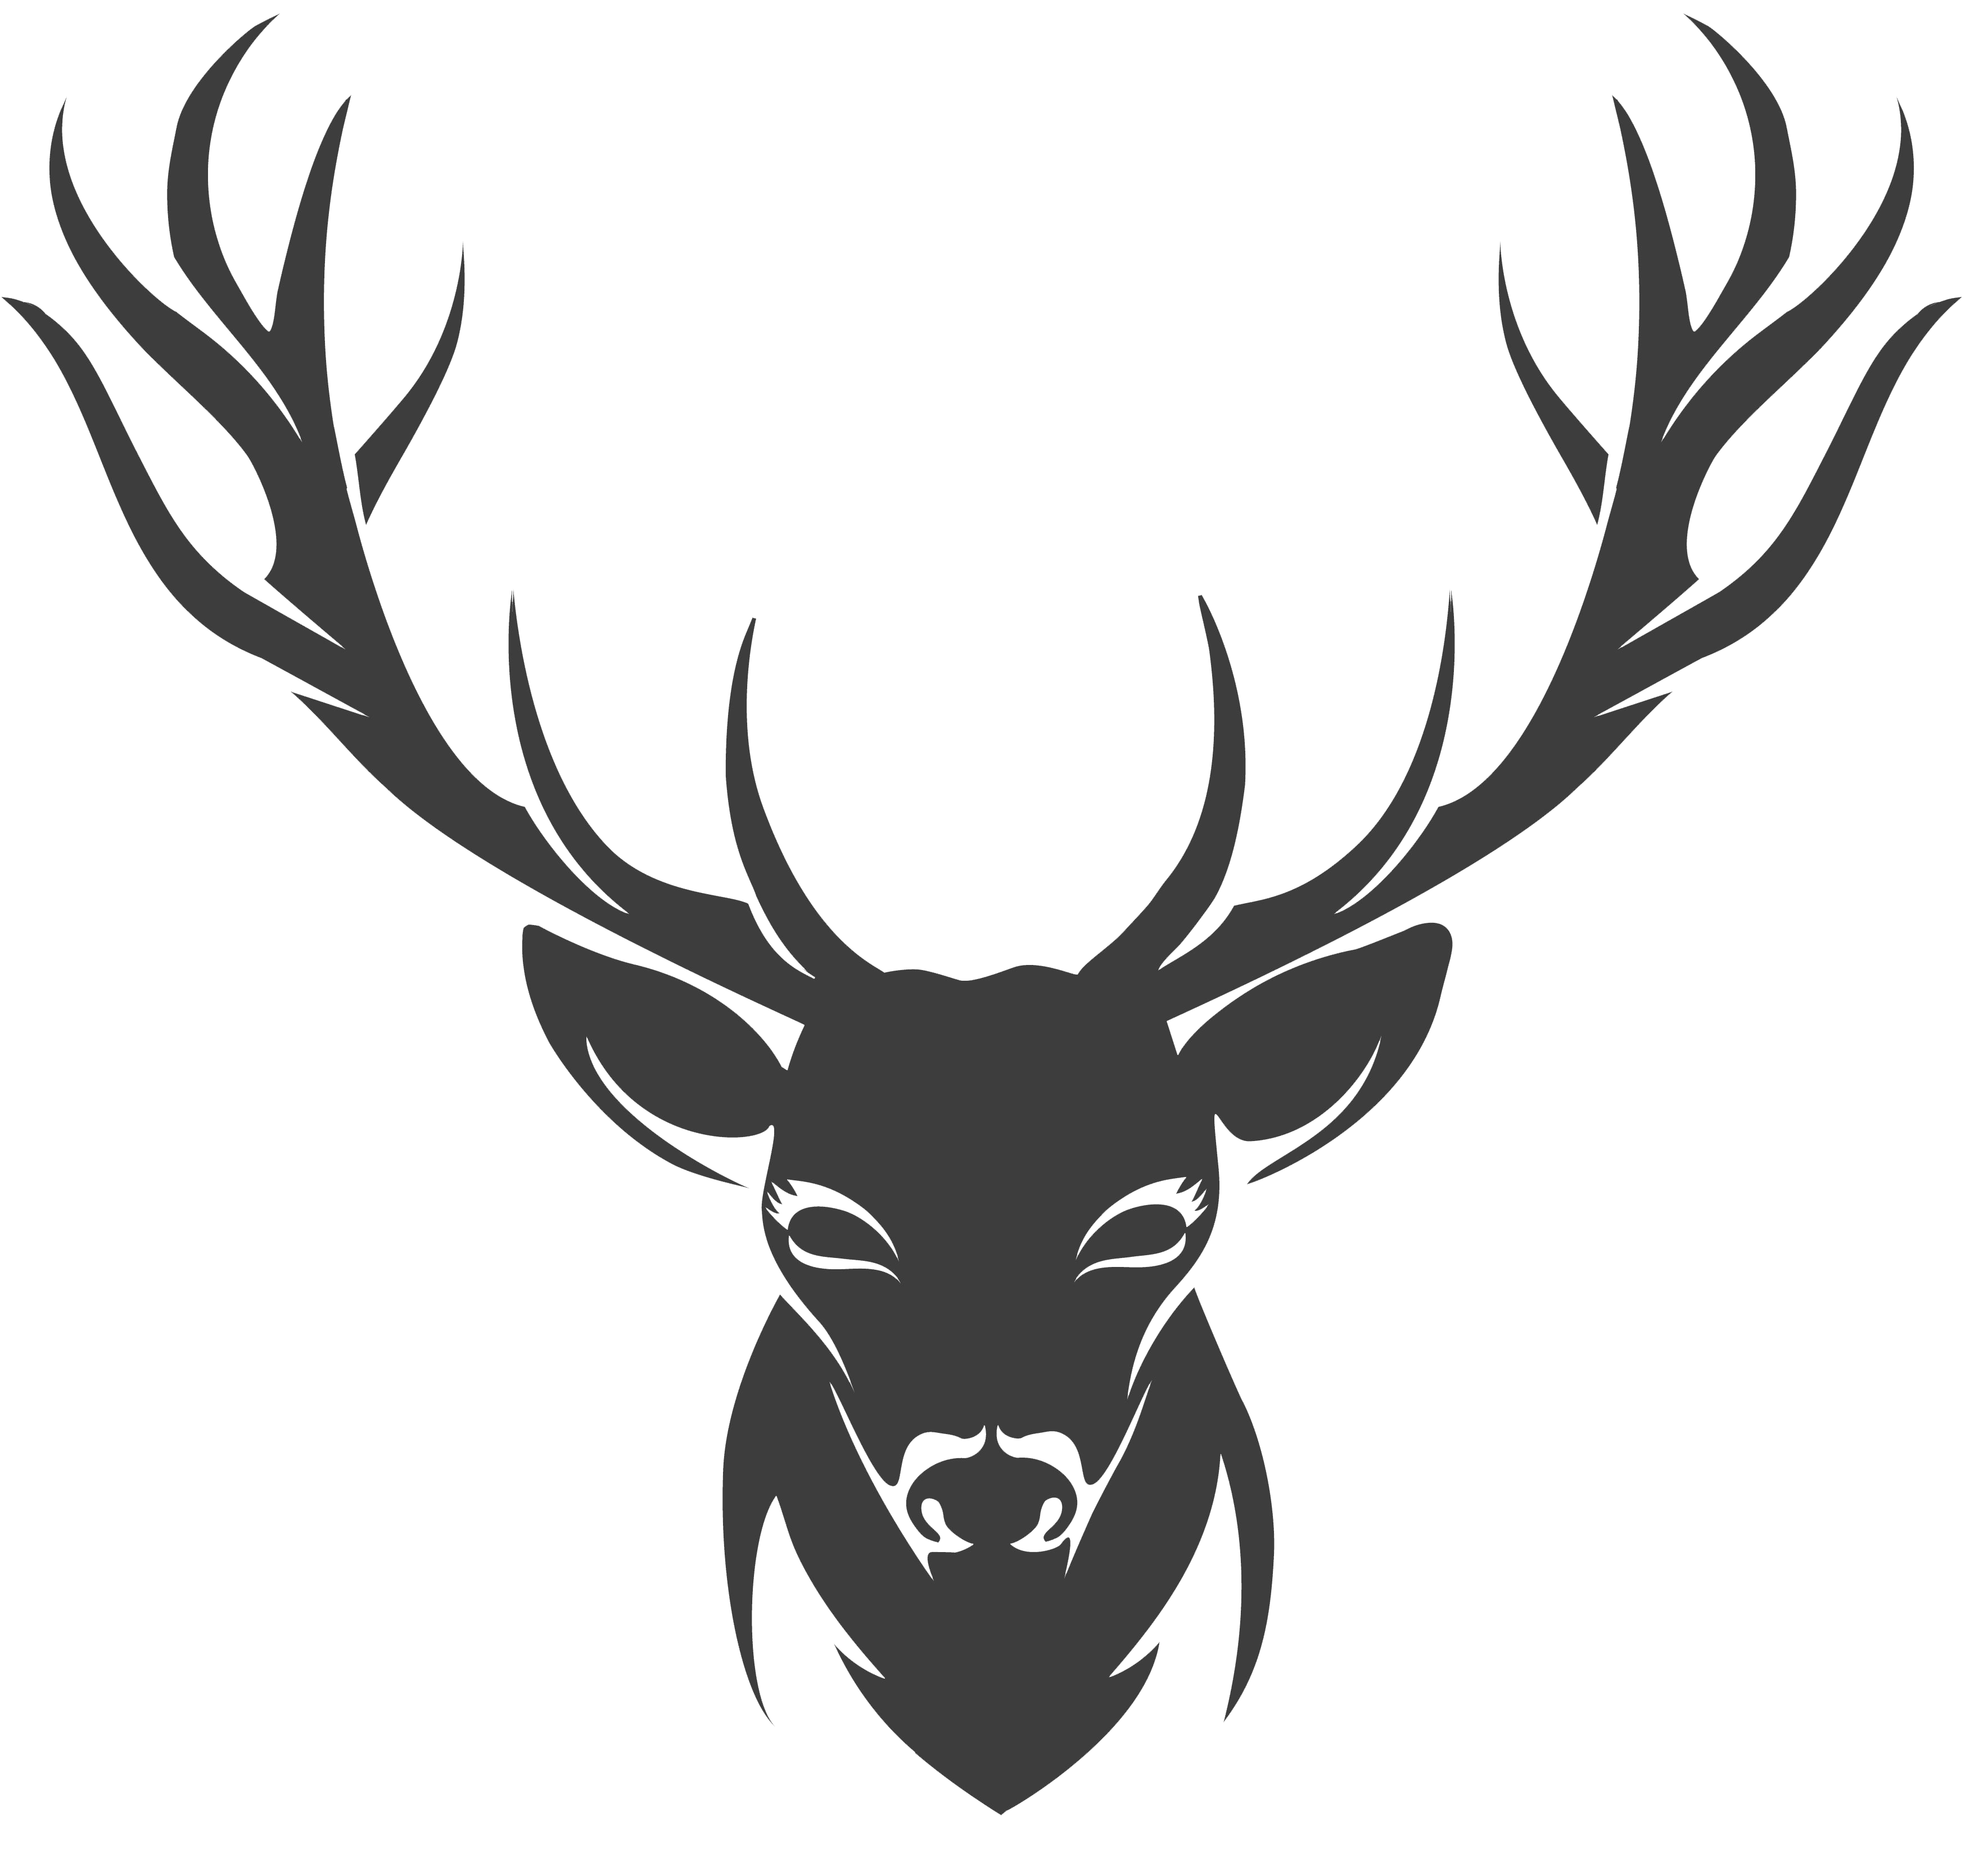 Antlers clipart stencil. Deer drawing horns png